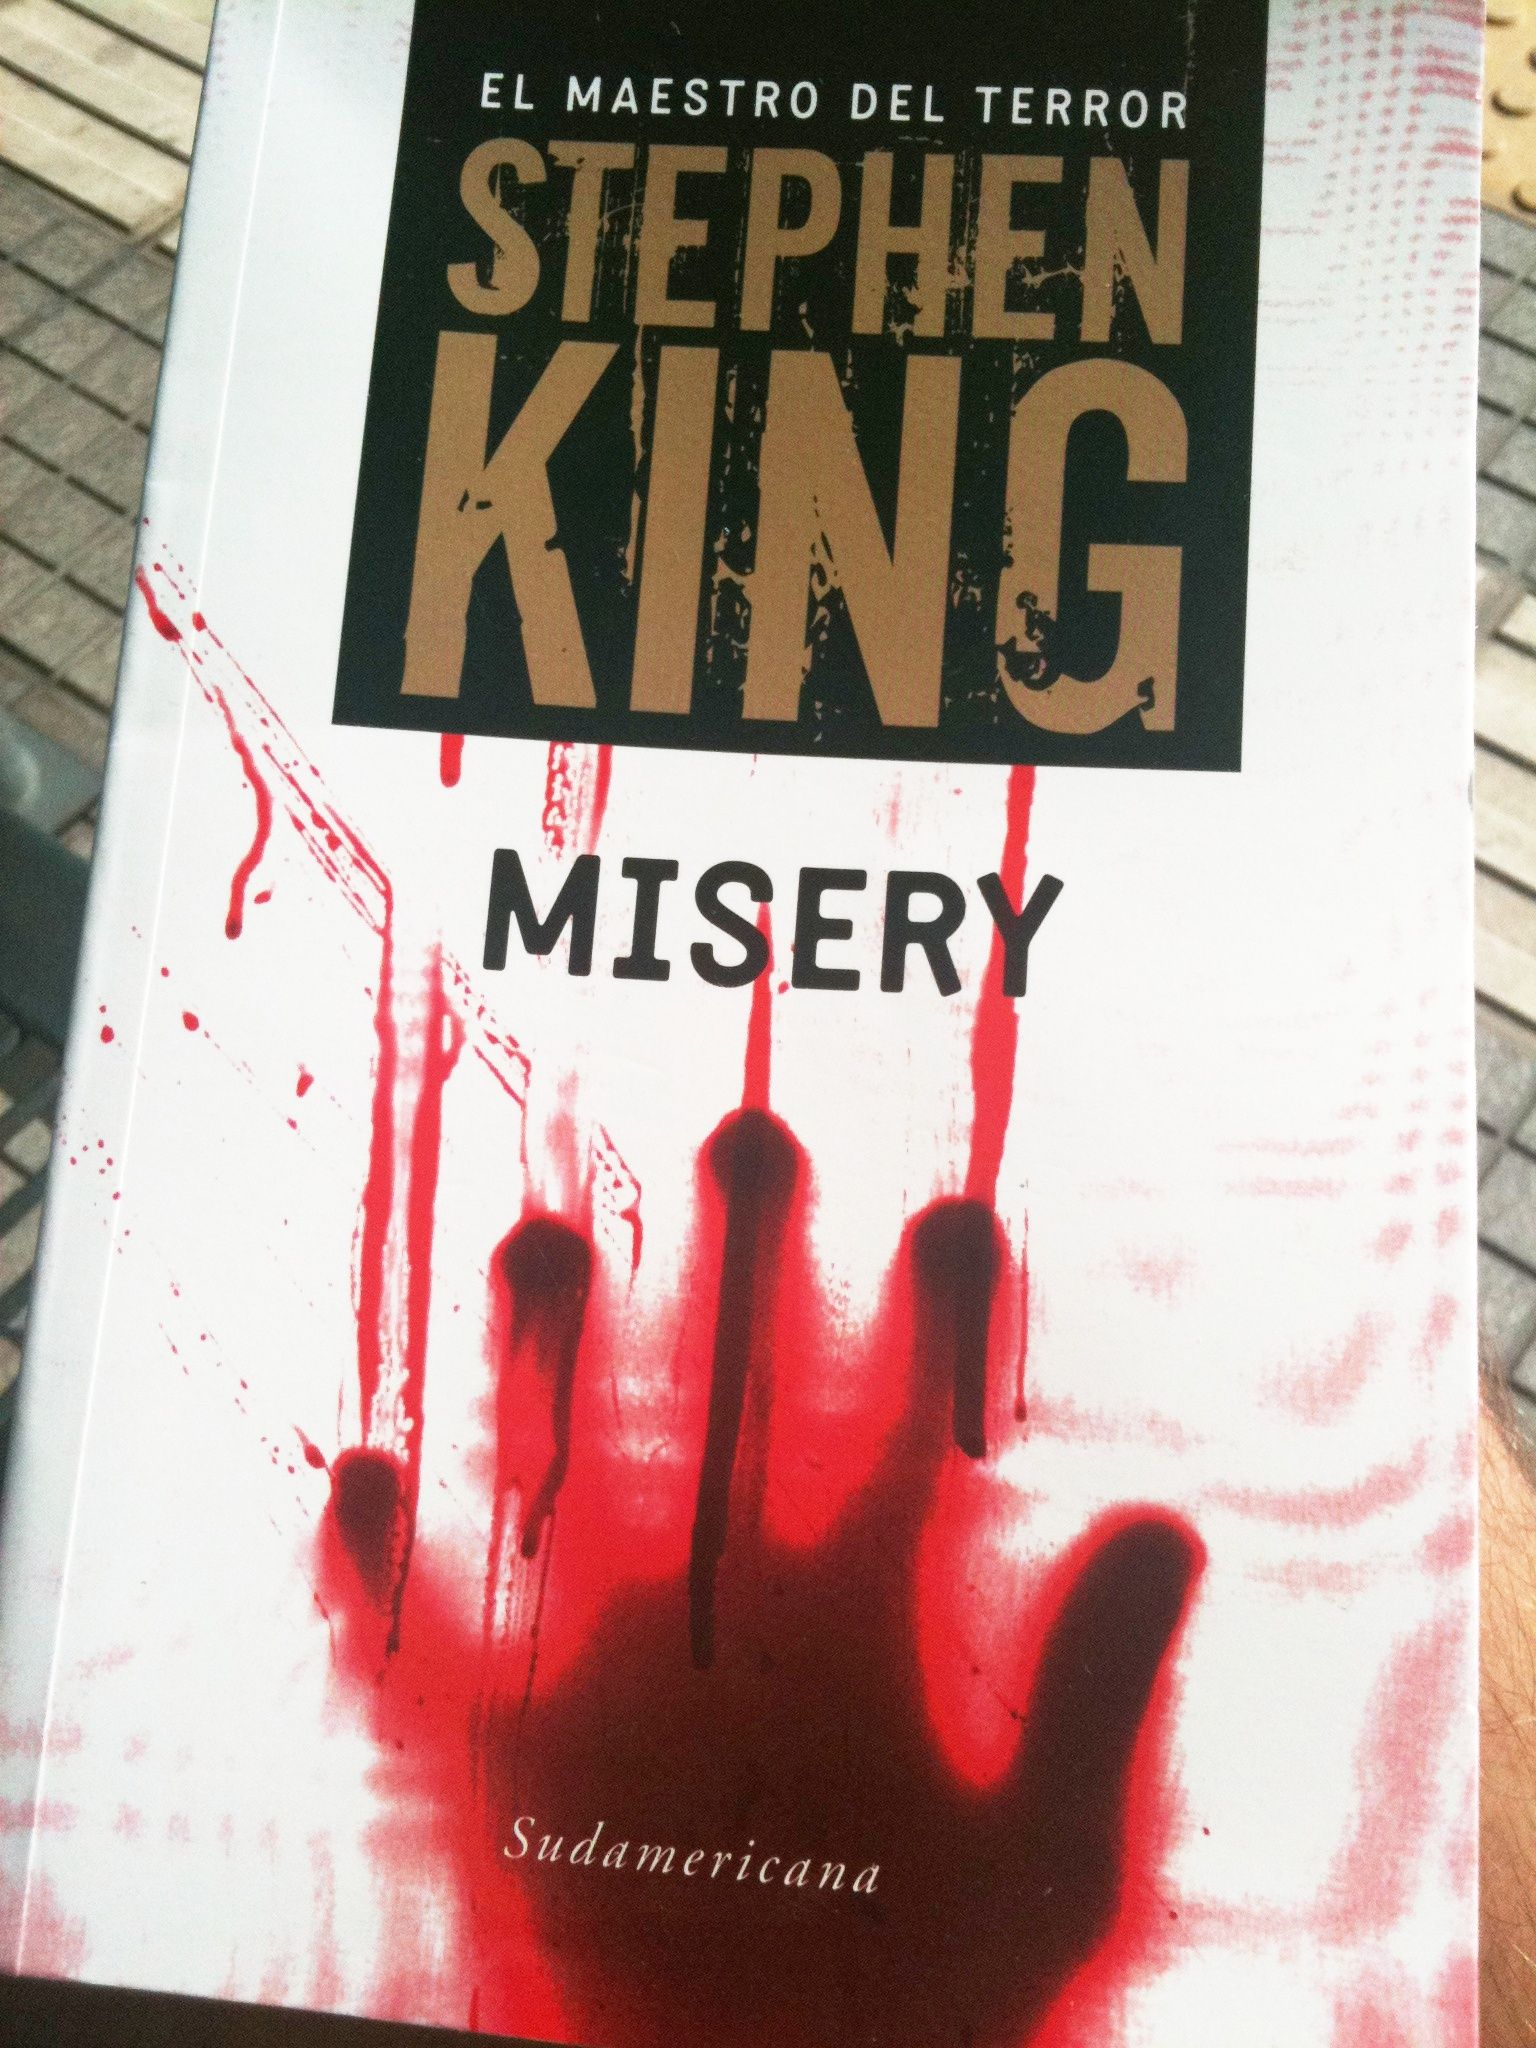 an analysis of the works of stephen king Stephen king's legacy as a bestselling horror/psychological fiction writer is attributed to his writing style because readers can identify with many of king's stephen king also creates identifiable characters that elicit immediate sympathy from readers due to inherently flawed but human traits.